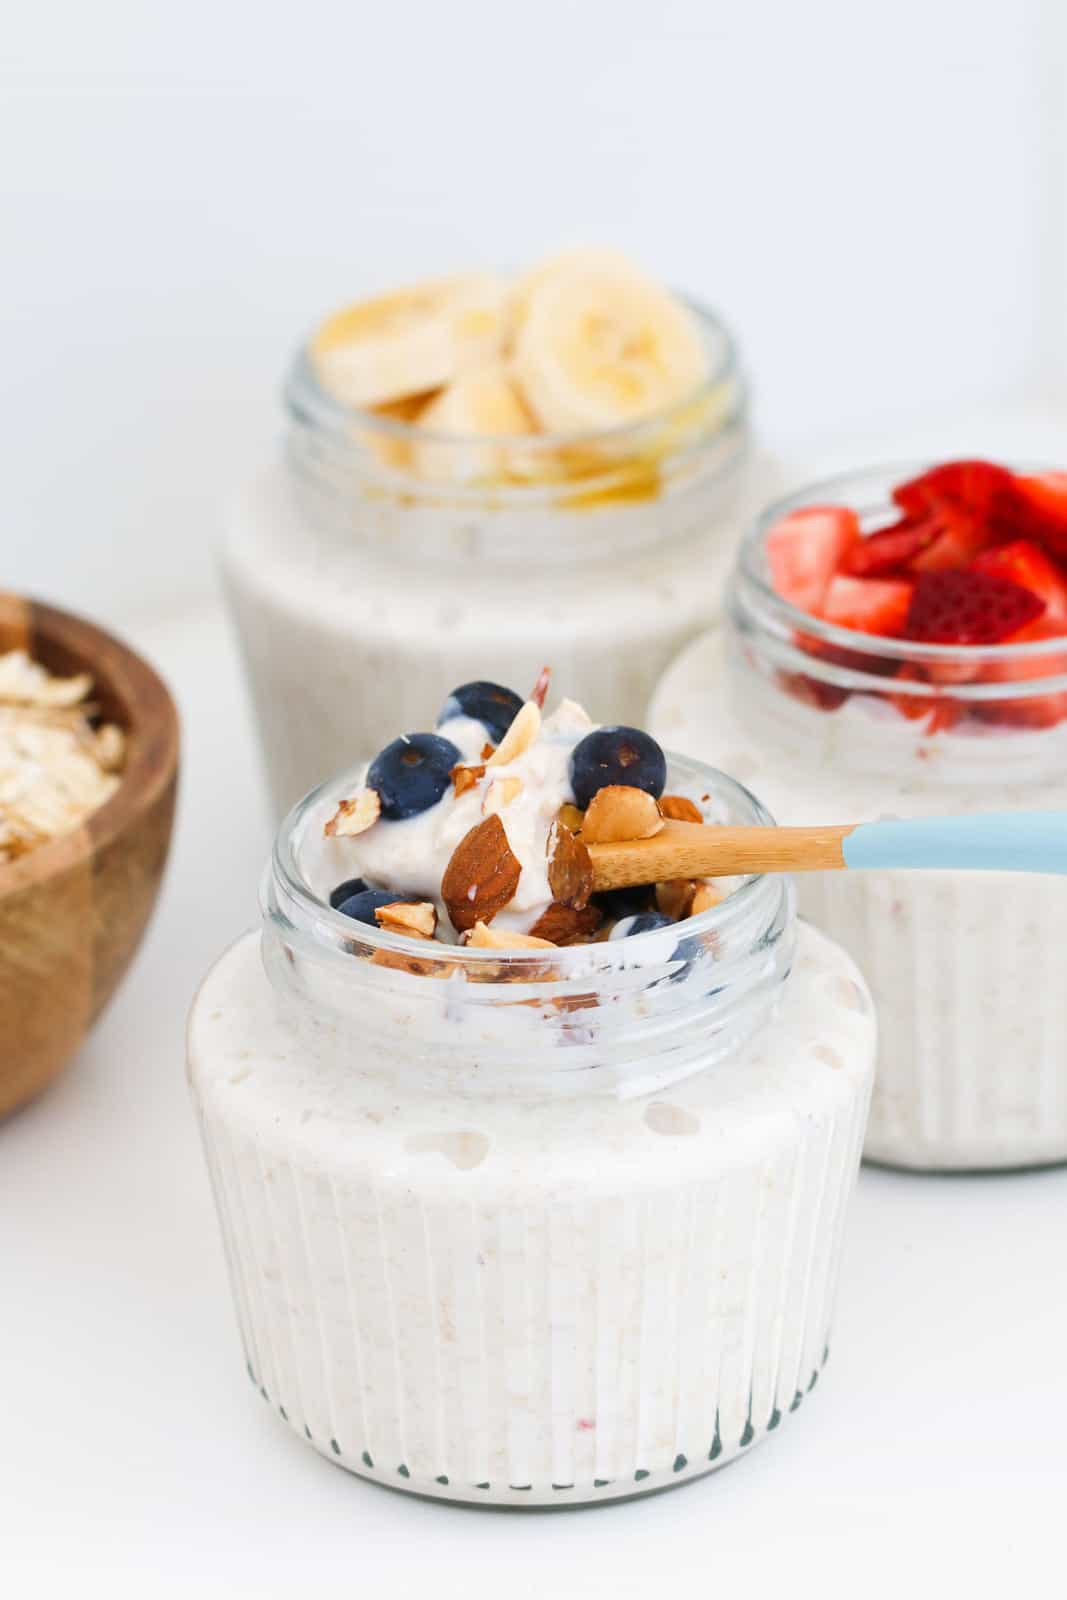 A spoon in a jar of homemade bircher muesli with nuts and blueberries on top.